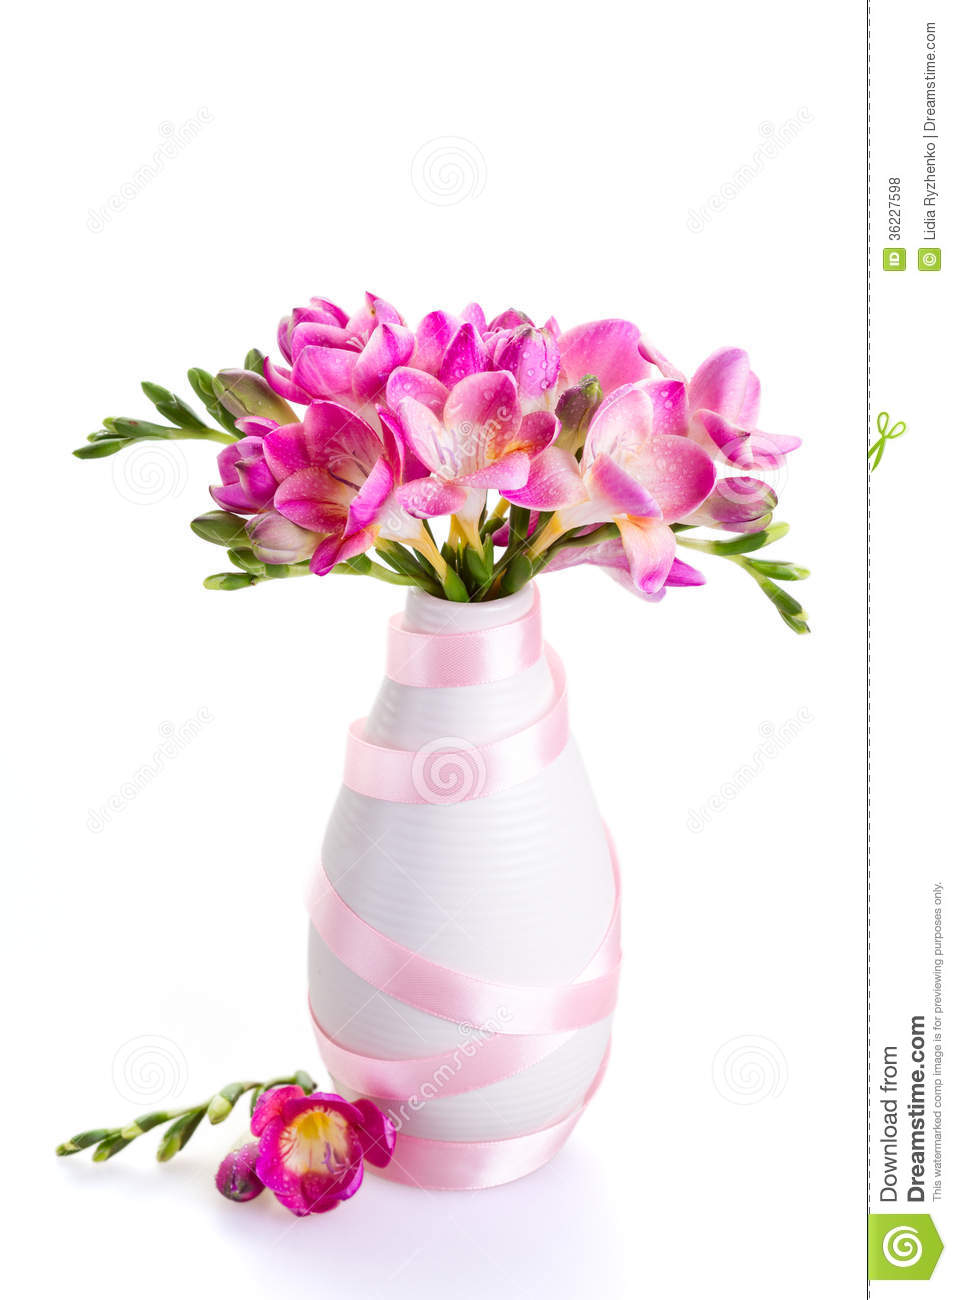 Flower vase decorations gallery vases design picture pink flowers in a white vase decorated with ribbon stock photo pink flowers in a white reviewsmspy